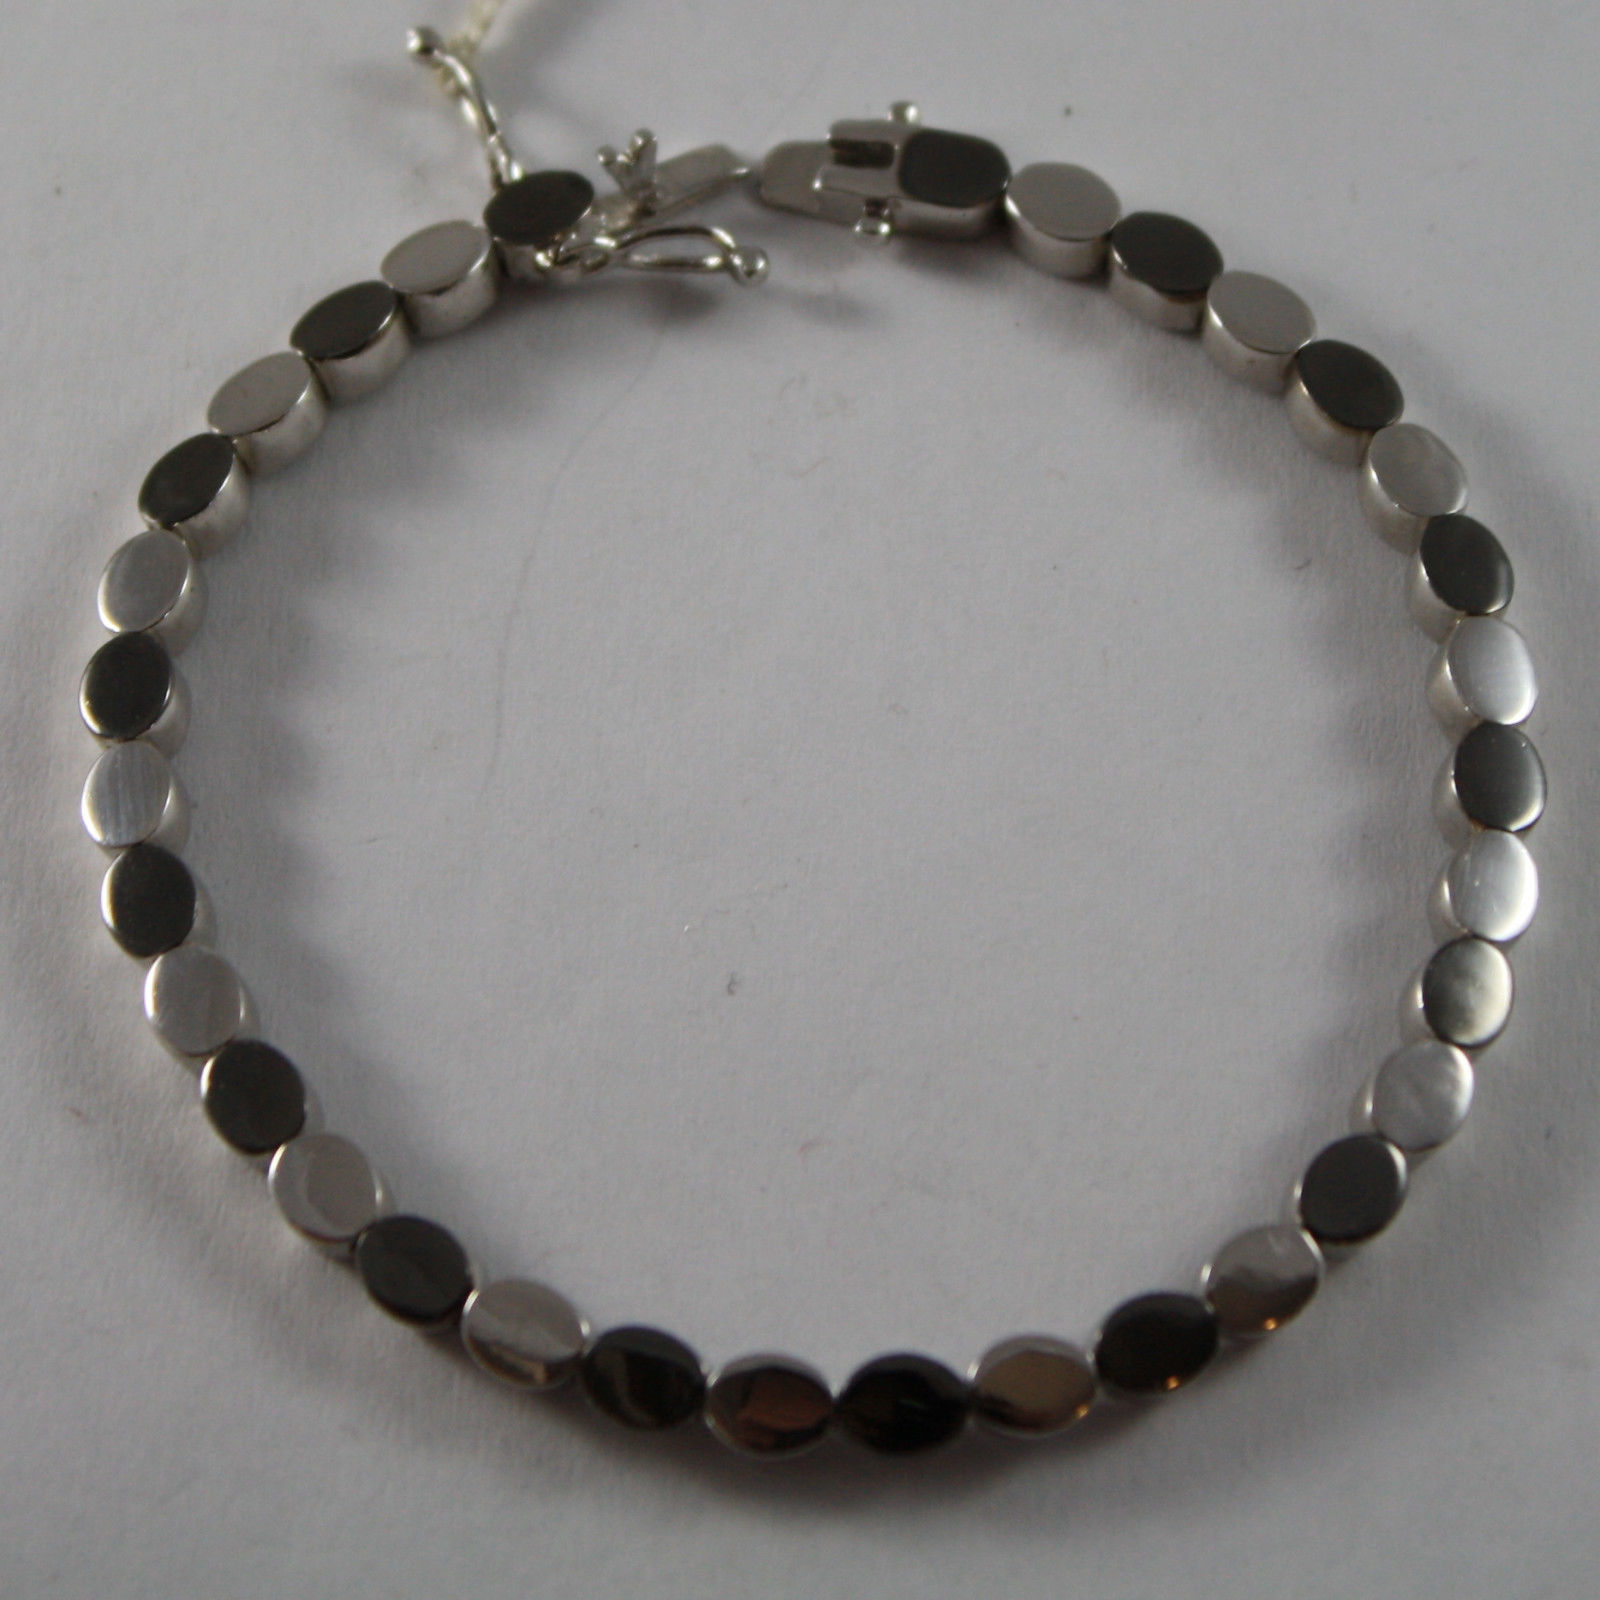 .925 RHODIUM SILVER BRACELET WITH OVAL MESH SHINY AND GRAY